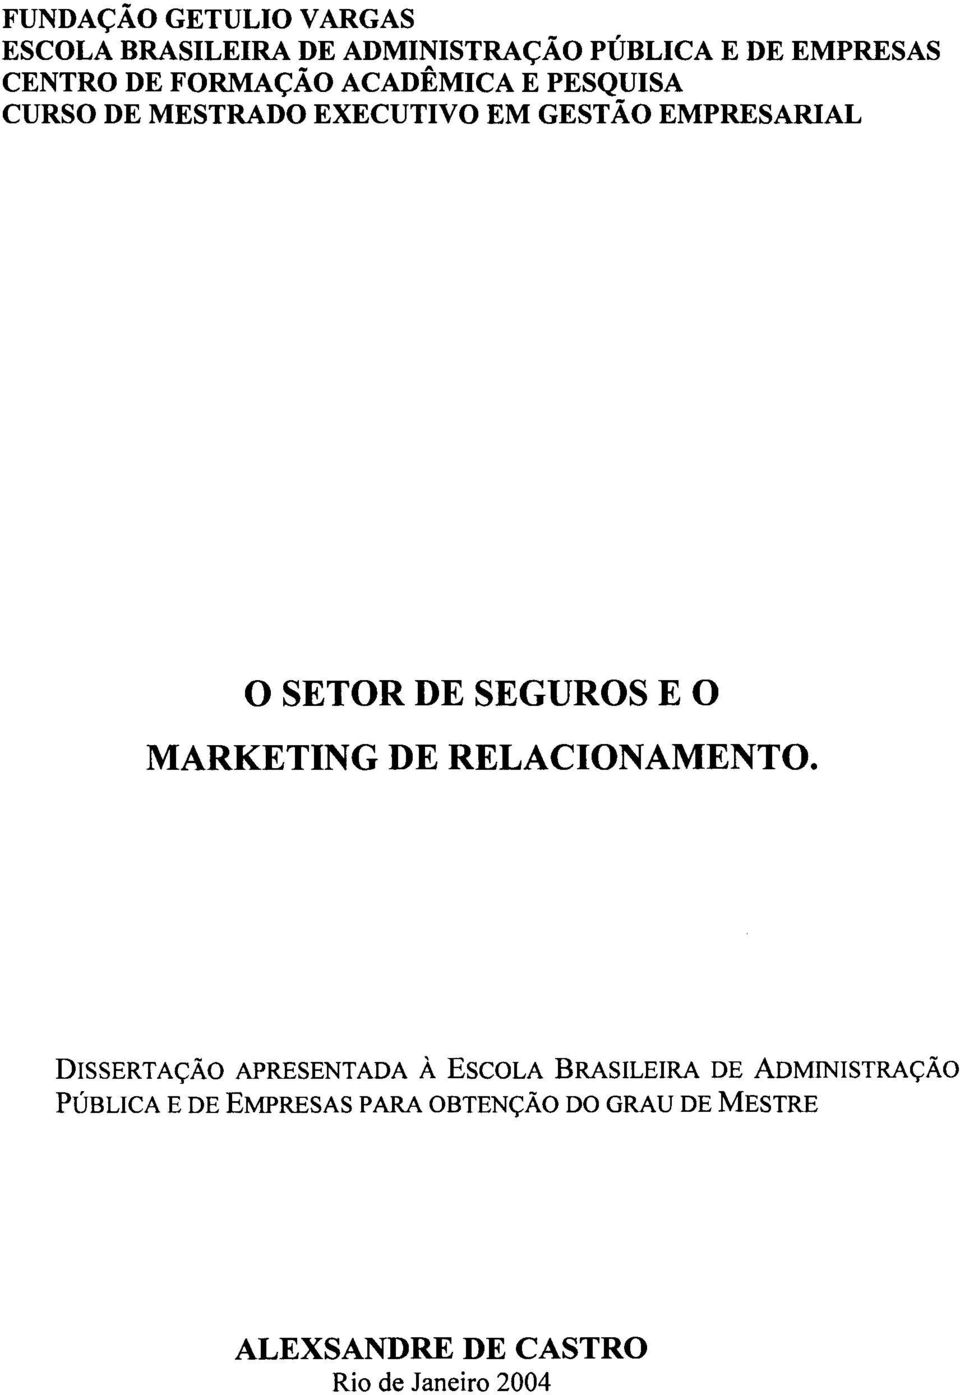 SEGUROS E O MARKETING DE RELACIONAMENTO.